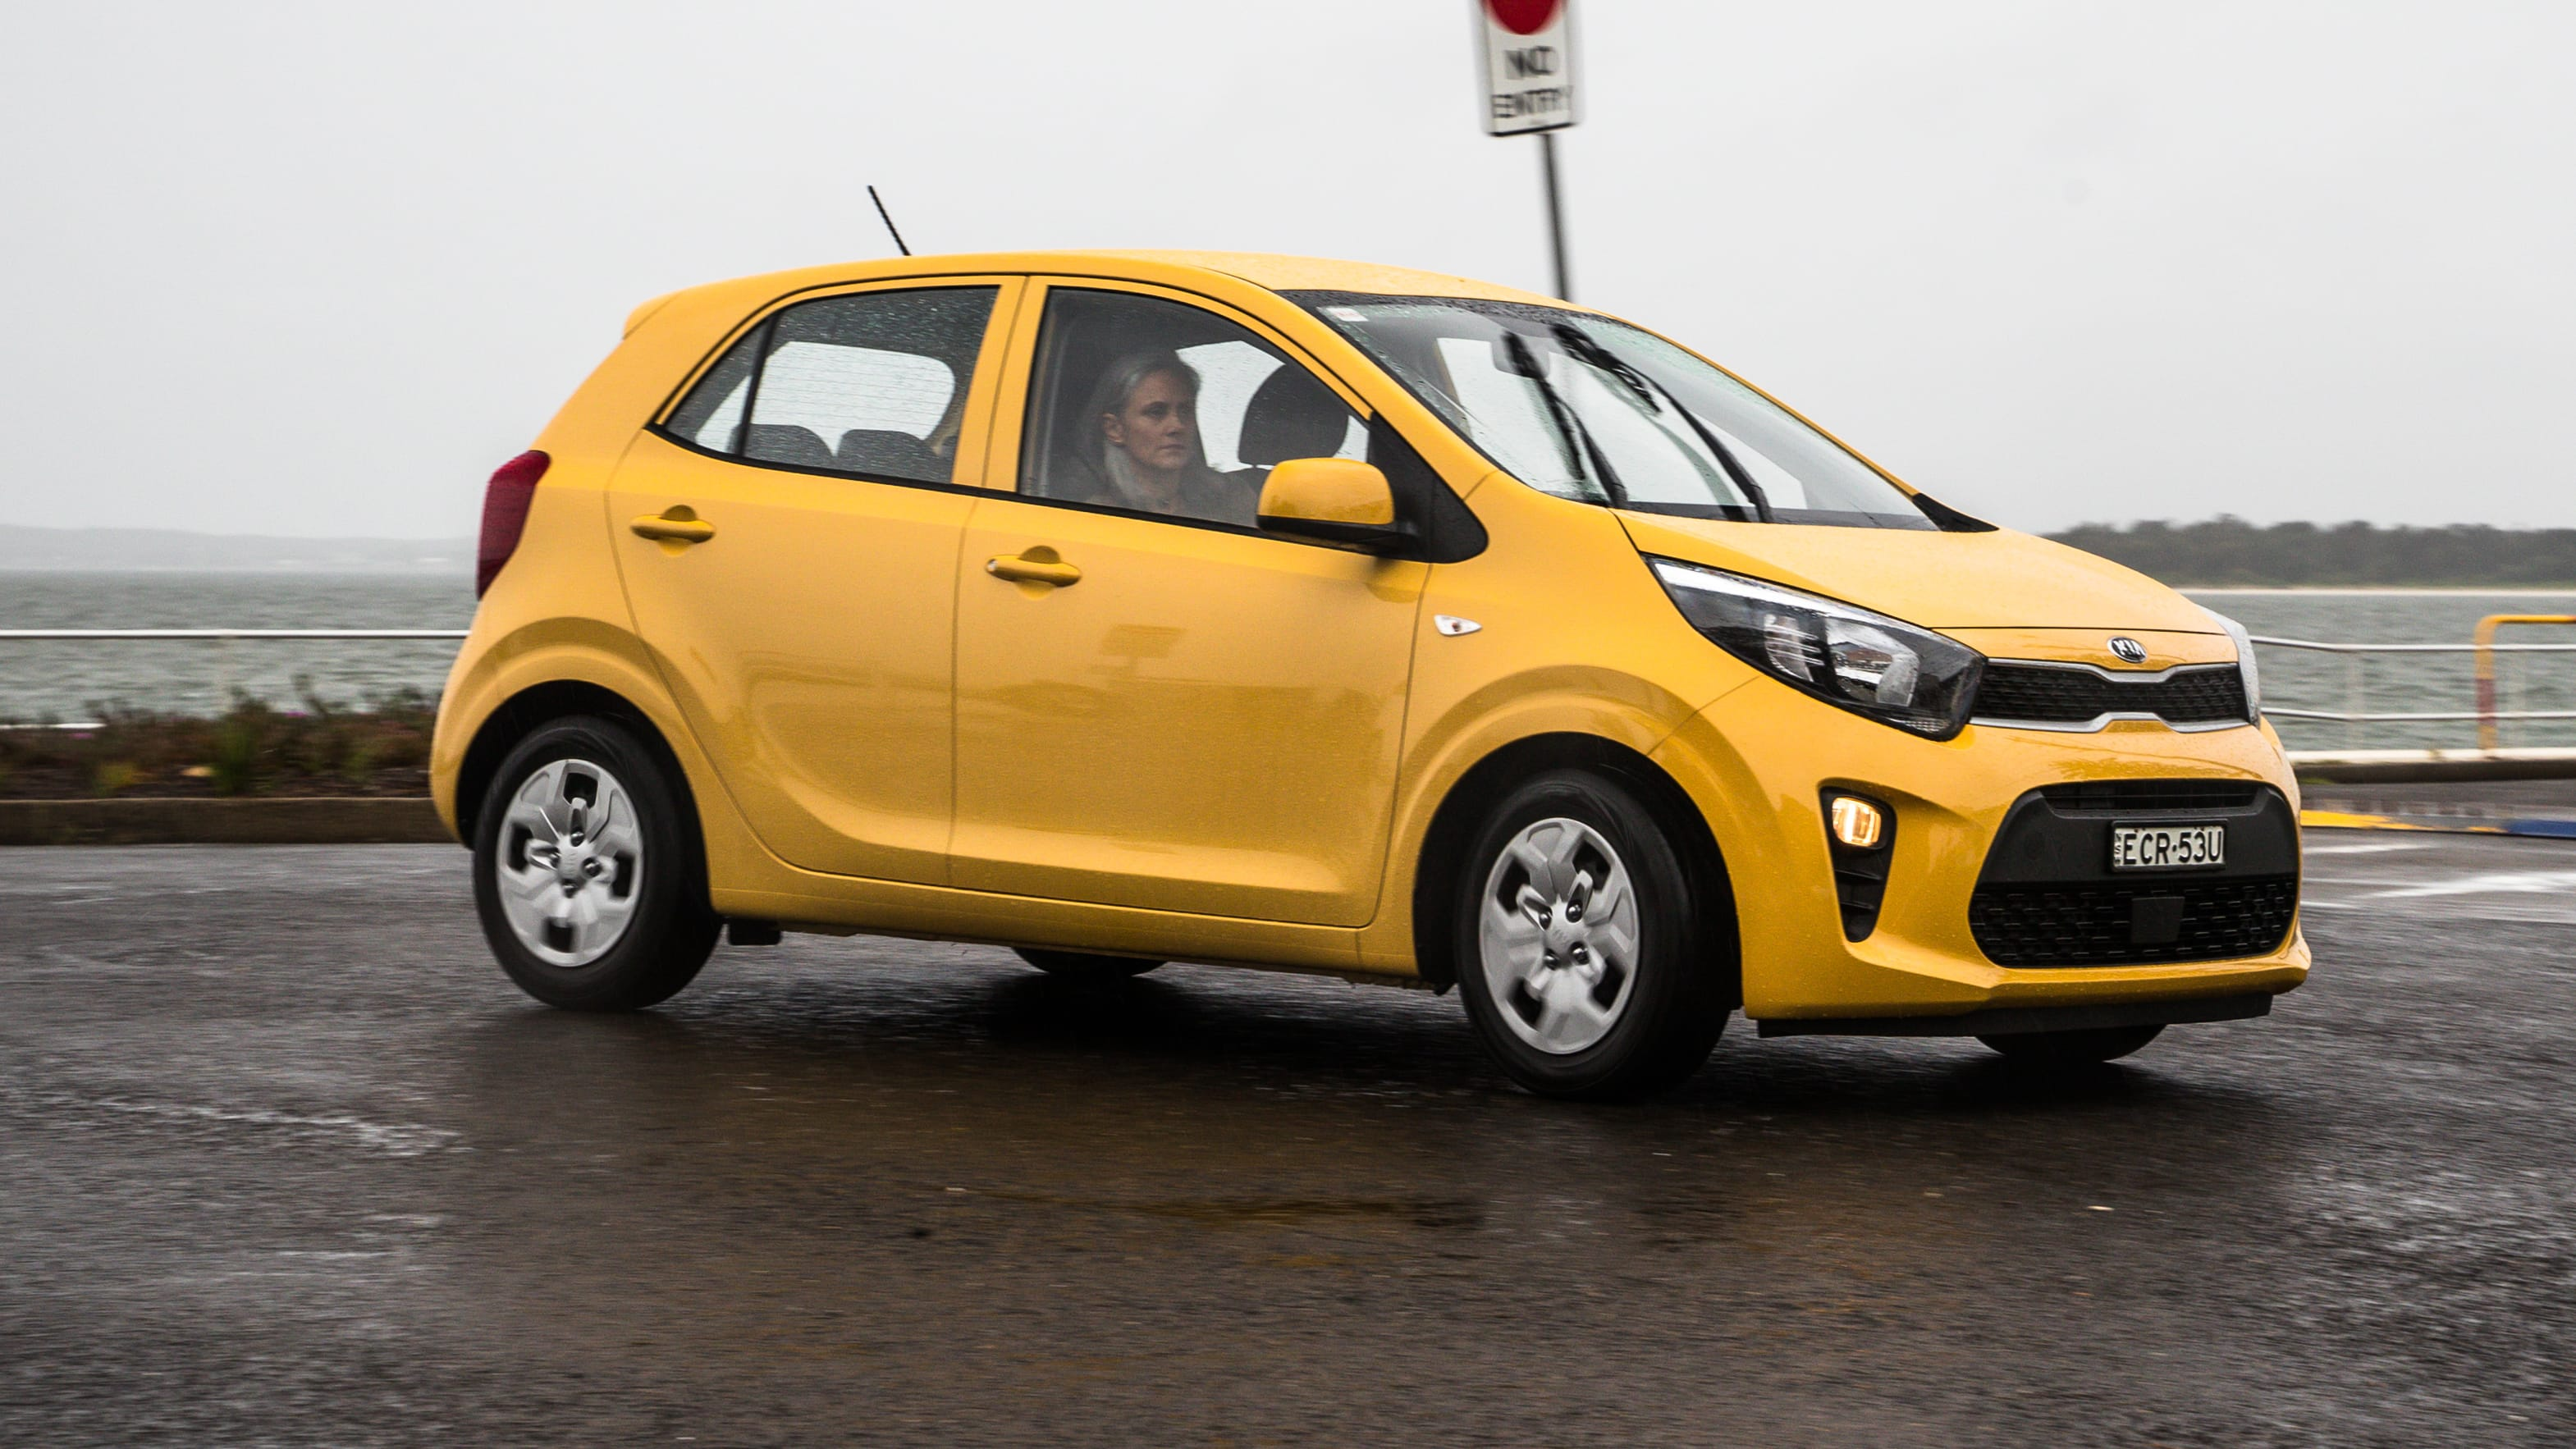 2020 Kia Picanto S automatic review